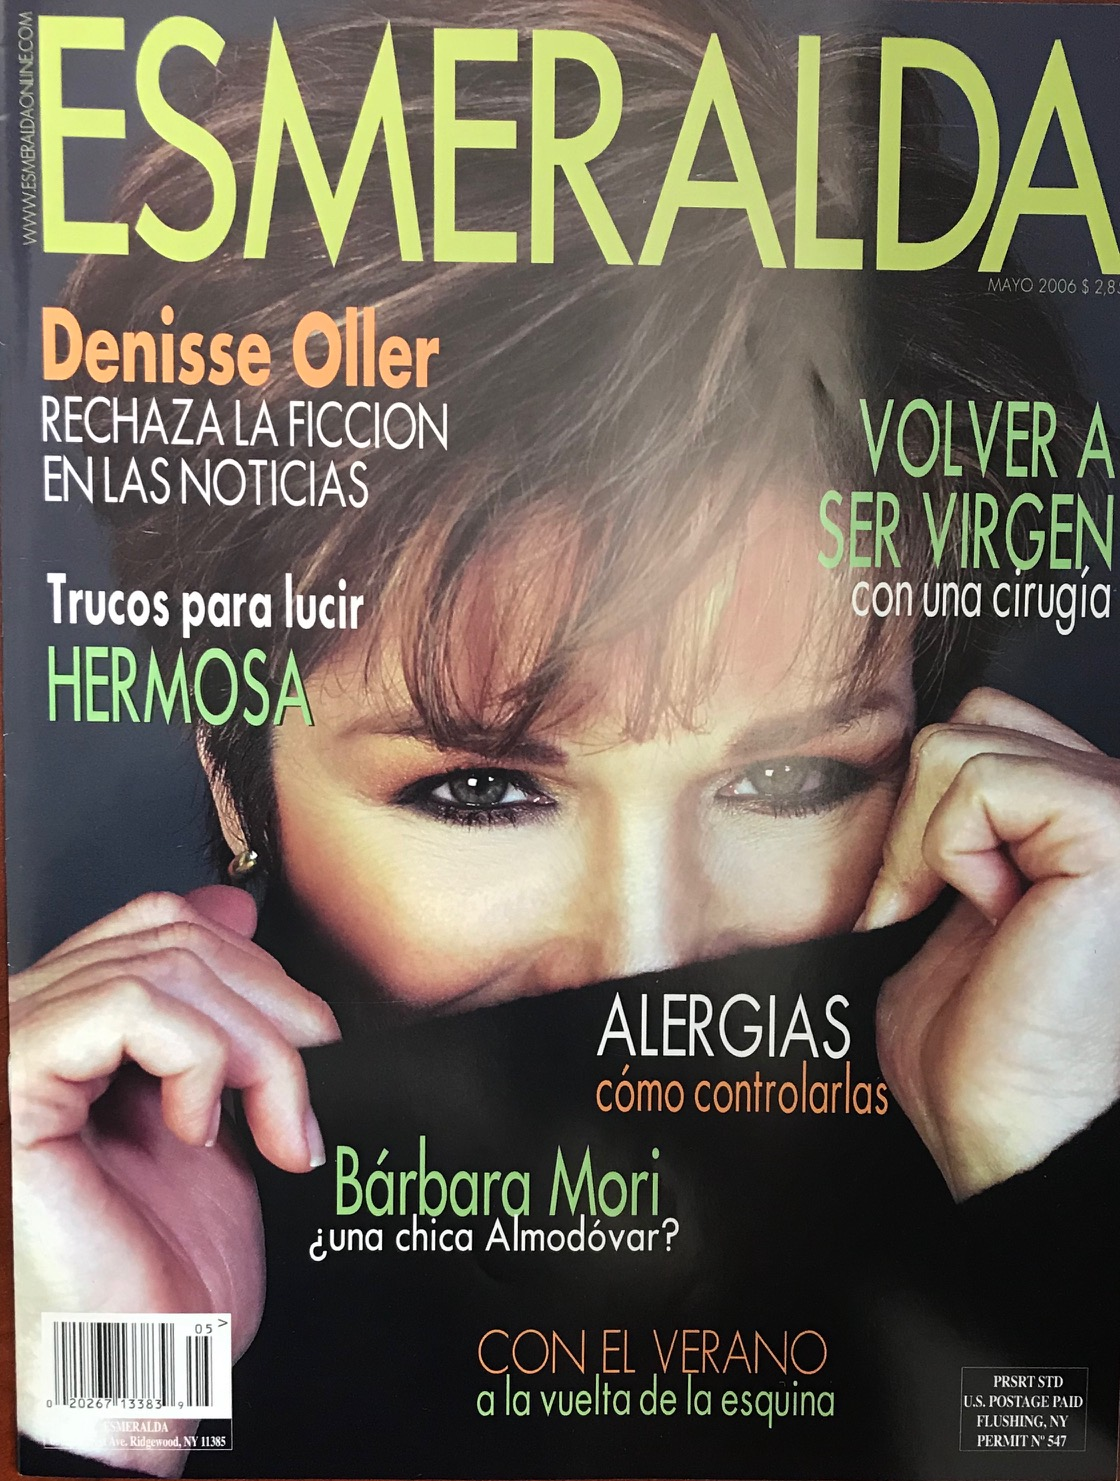 Denisse Oller Awards Accolades Magazine Cover